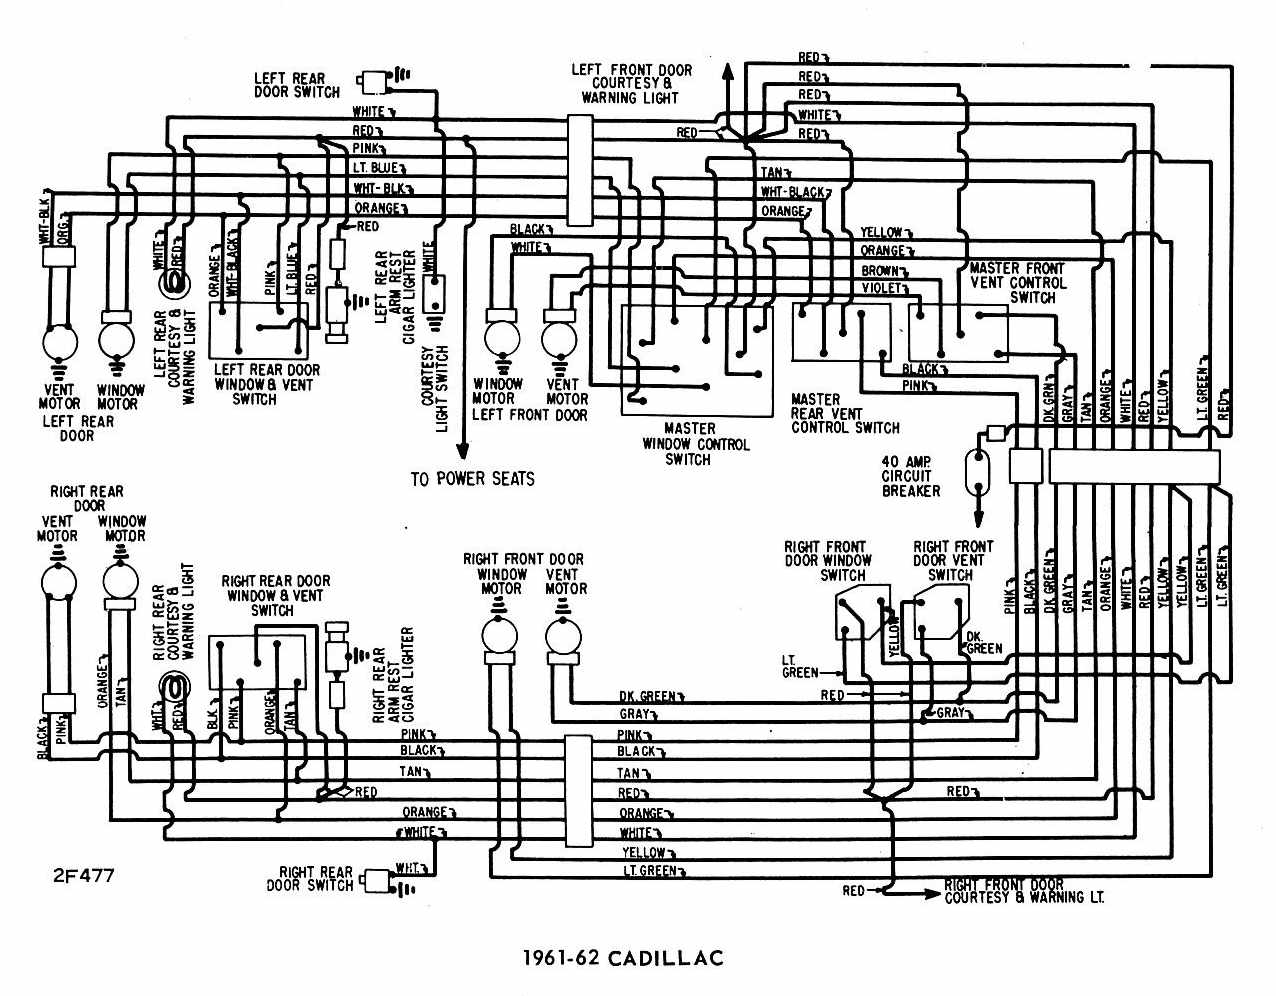 hight resolution of cadillac radio wiring diagrams wiring library fleetwood coronado wiring diagram on cadillac cts wiring diagrams